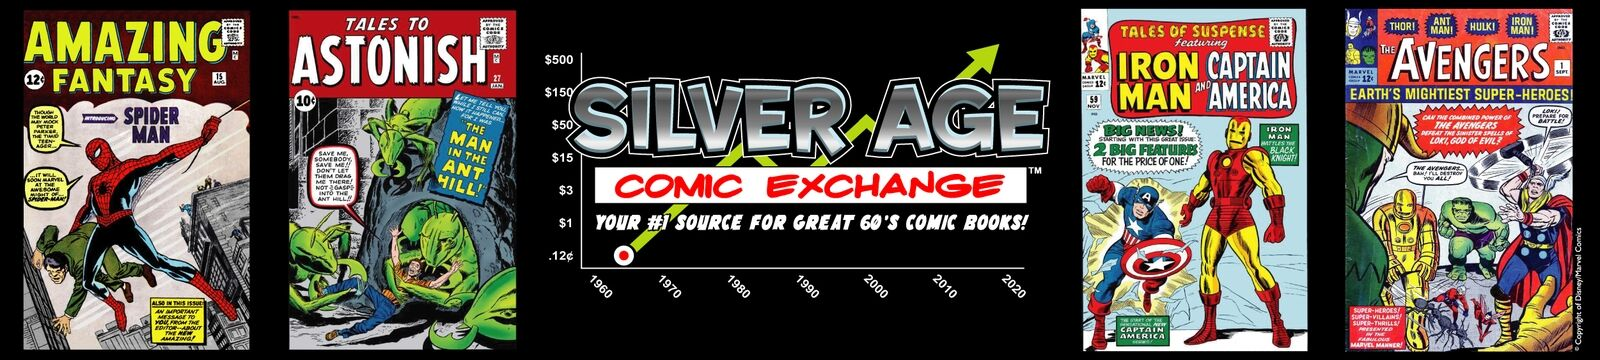 silver age comic exchange